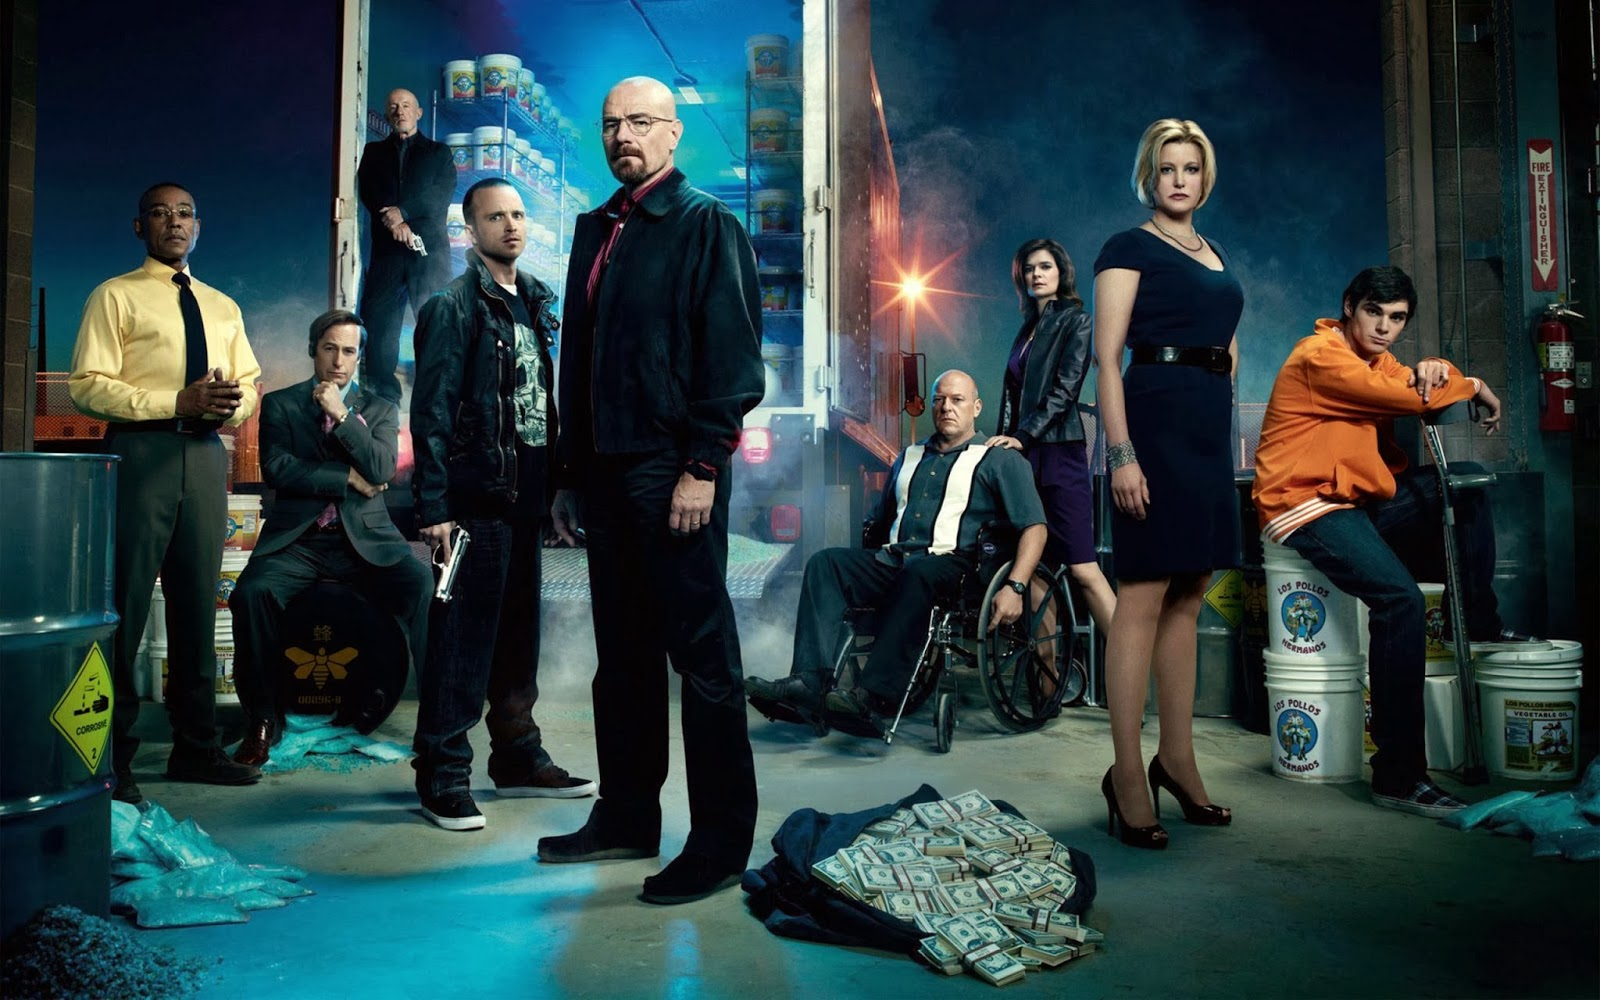 breaking bad season 5 sub thai no3series